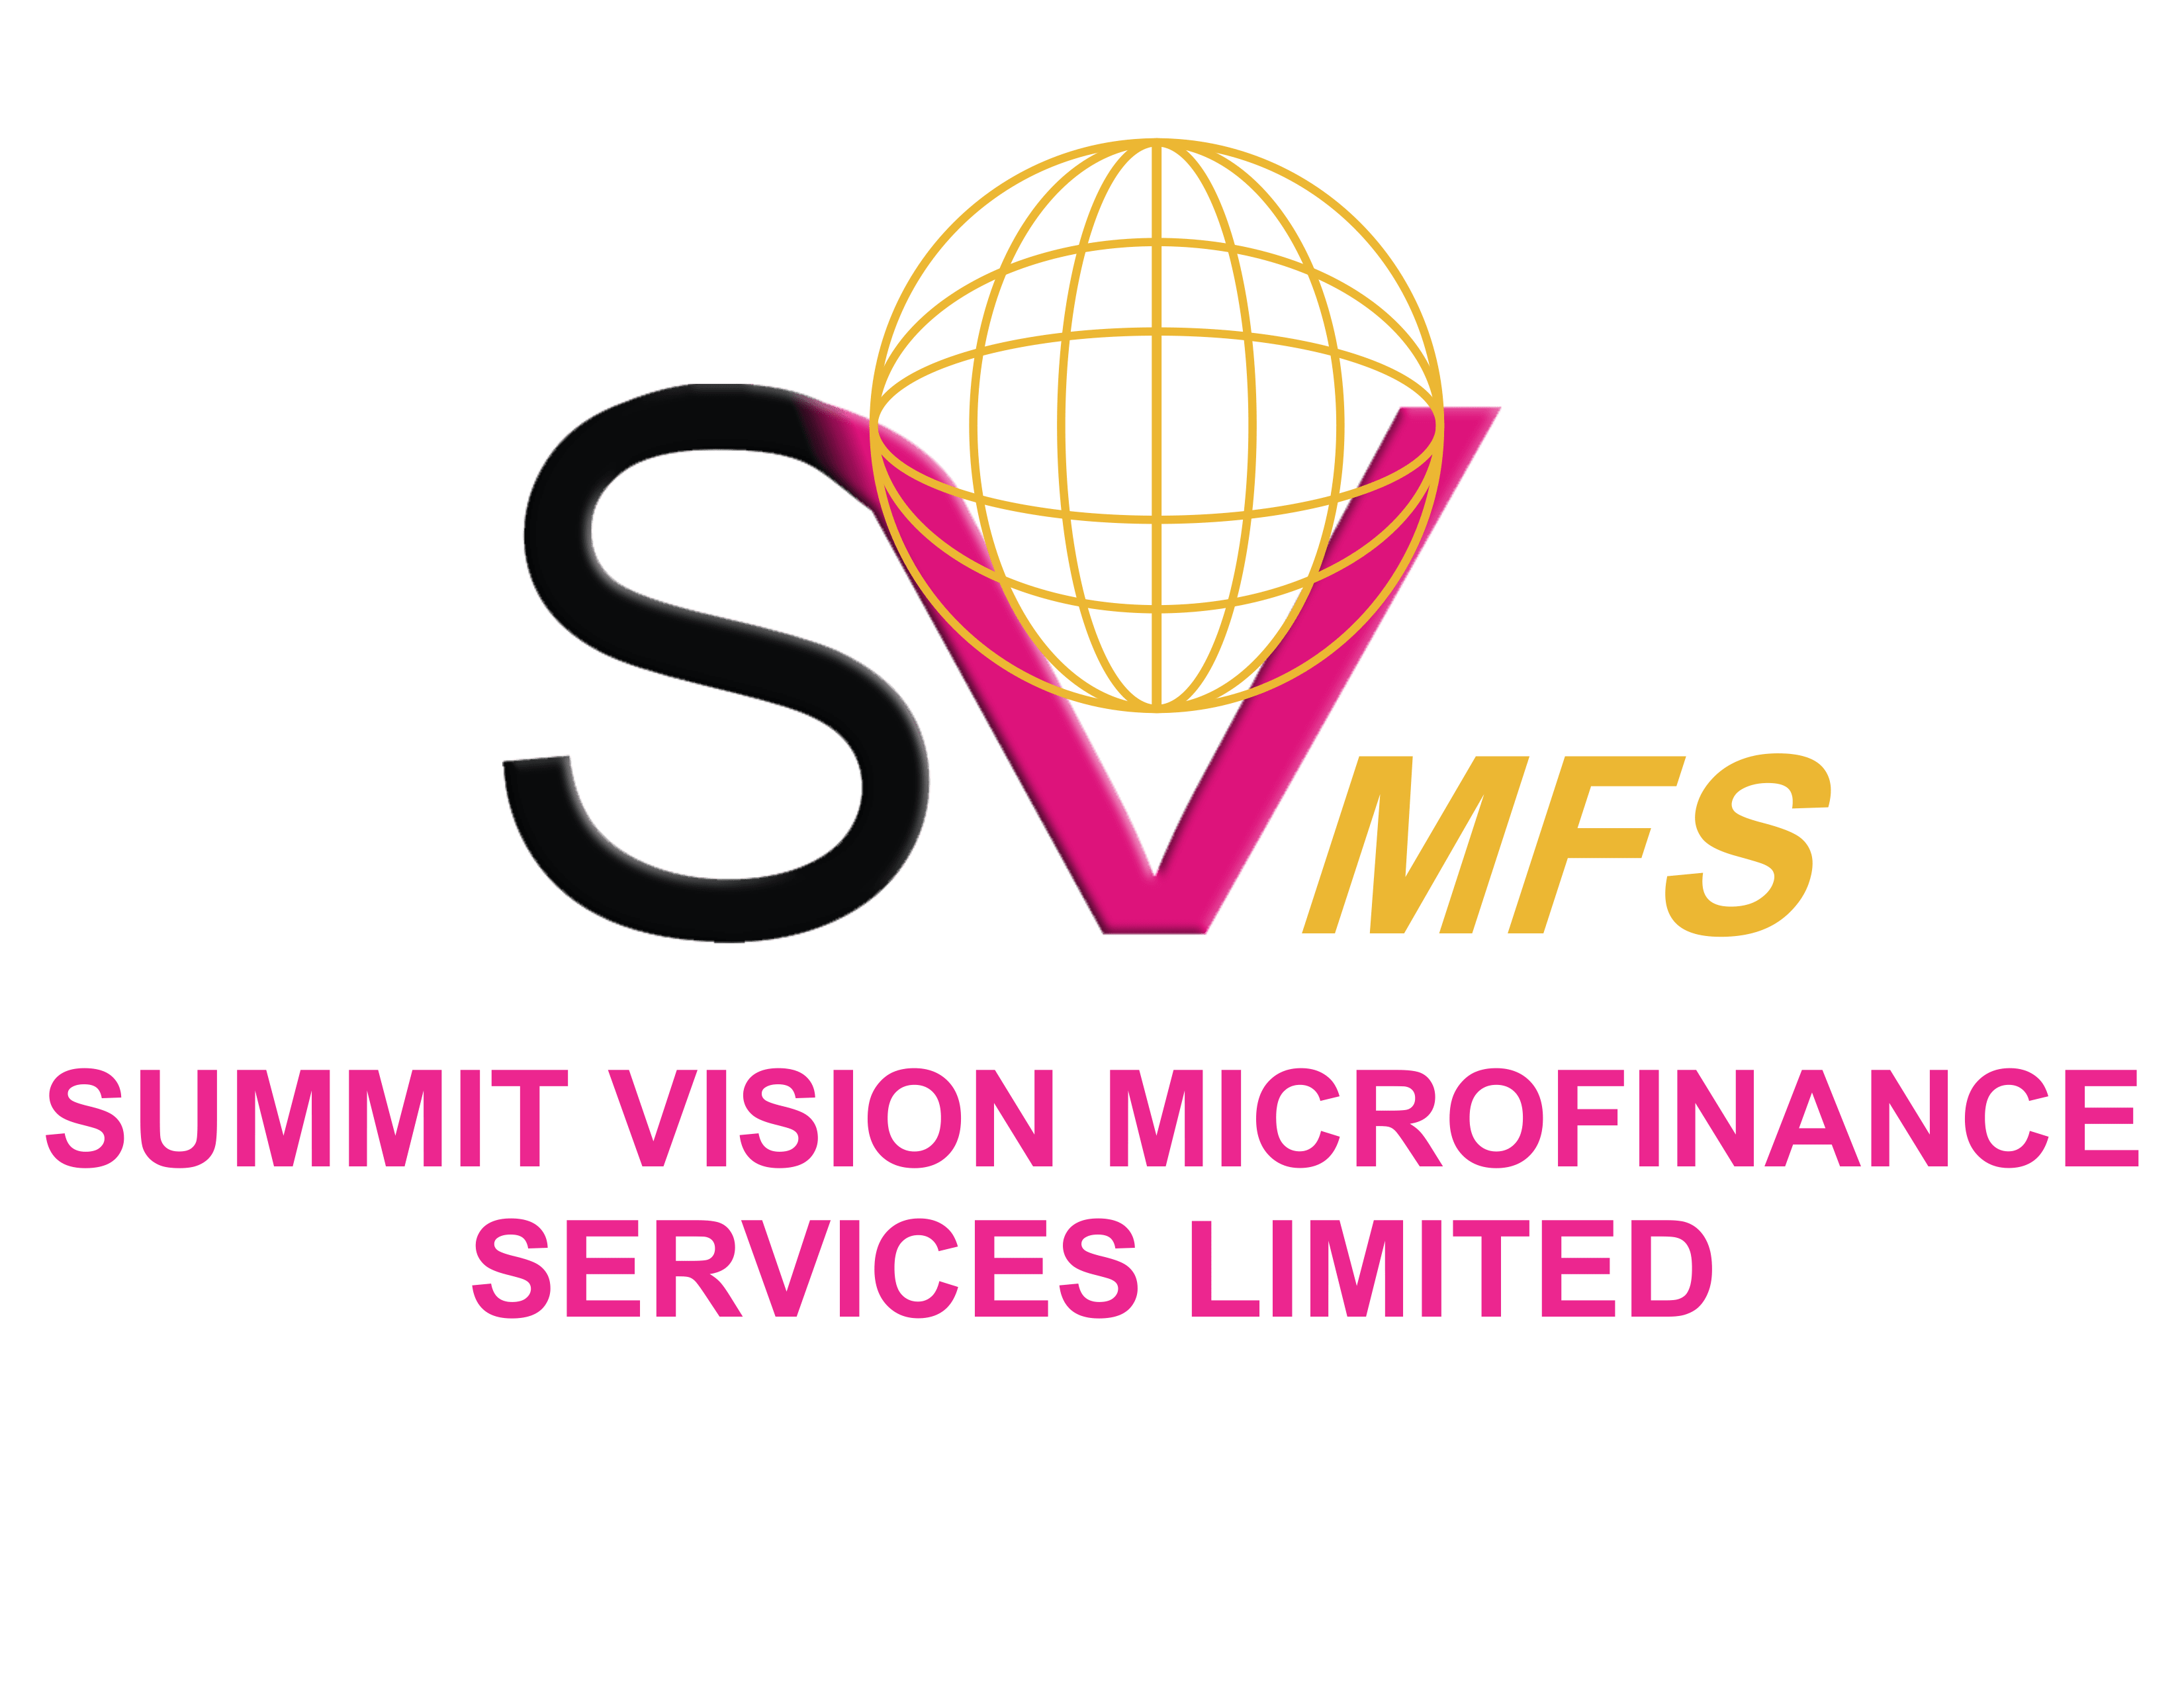 Summit Vision Microfinance